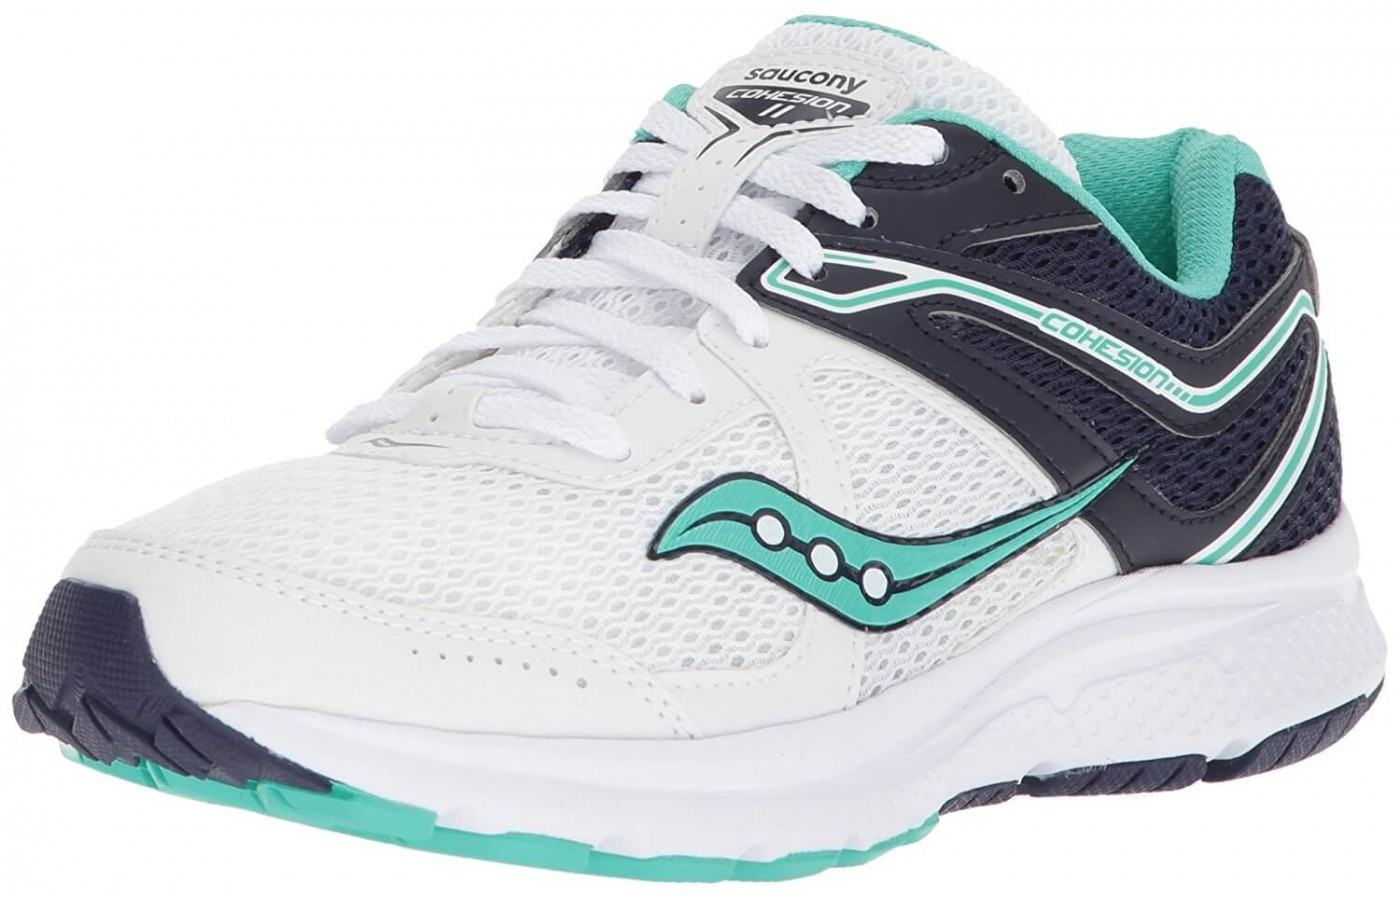 The Saucony Cohesion 11 in a white, navy, and teal colorway